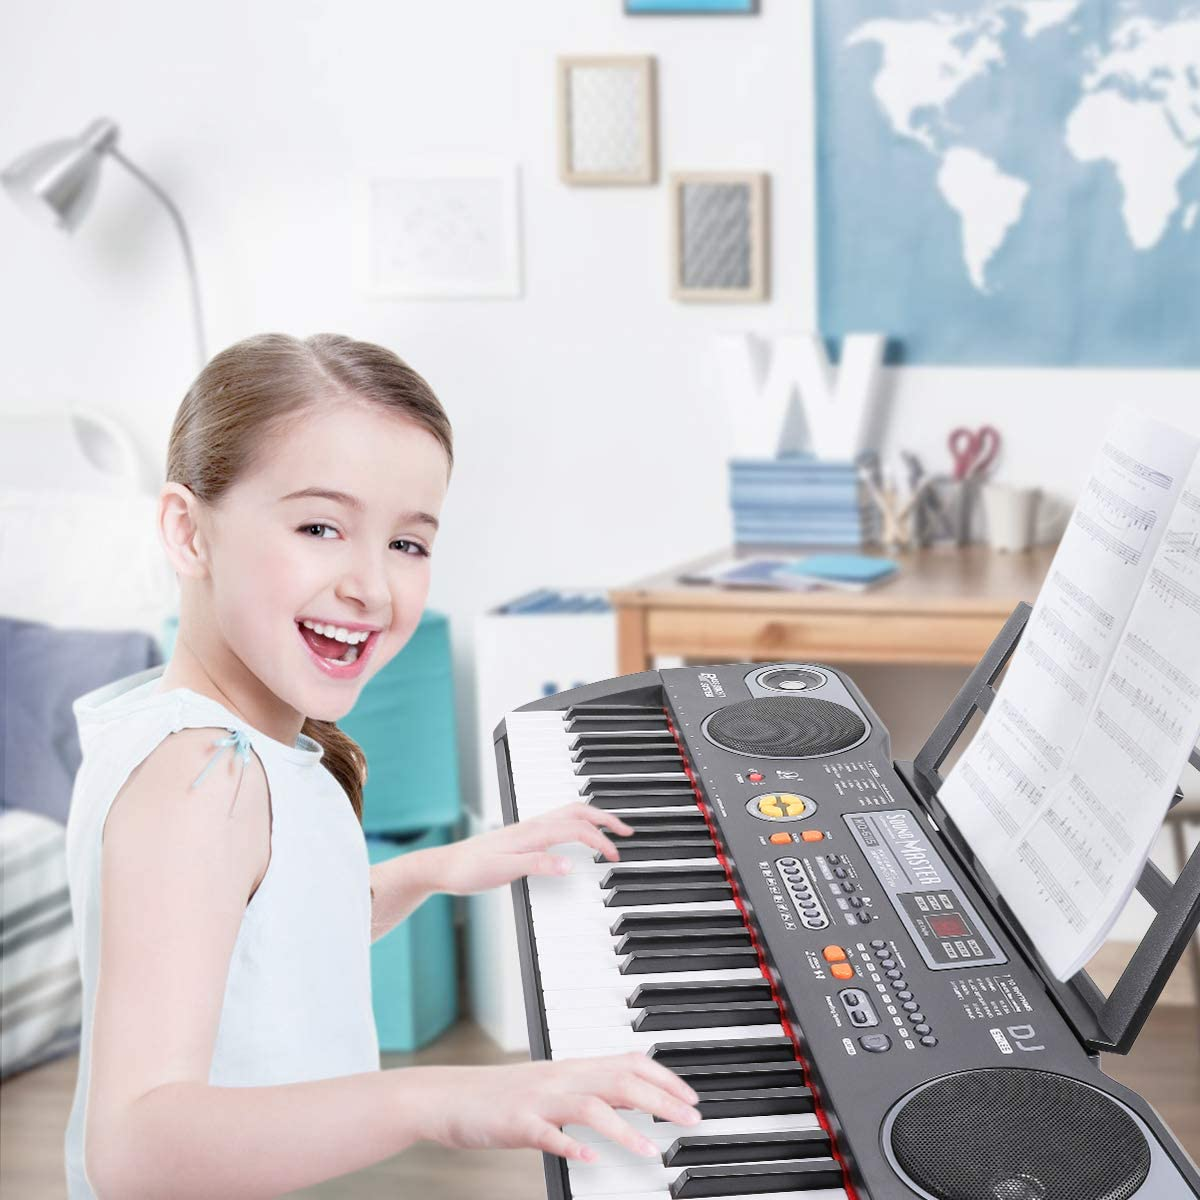 Beginners Learning Keyboard USB Supply or Battery Powered Electronic Keyboard Digital Piano with Music Stand Magicfun 61 Key Keyboard Piano Built-in Speaker and Teaching Record Mode